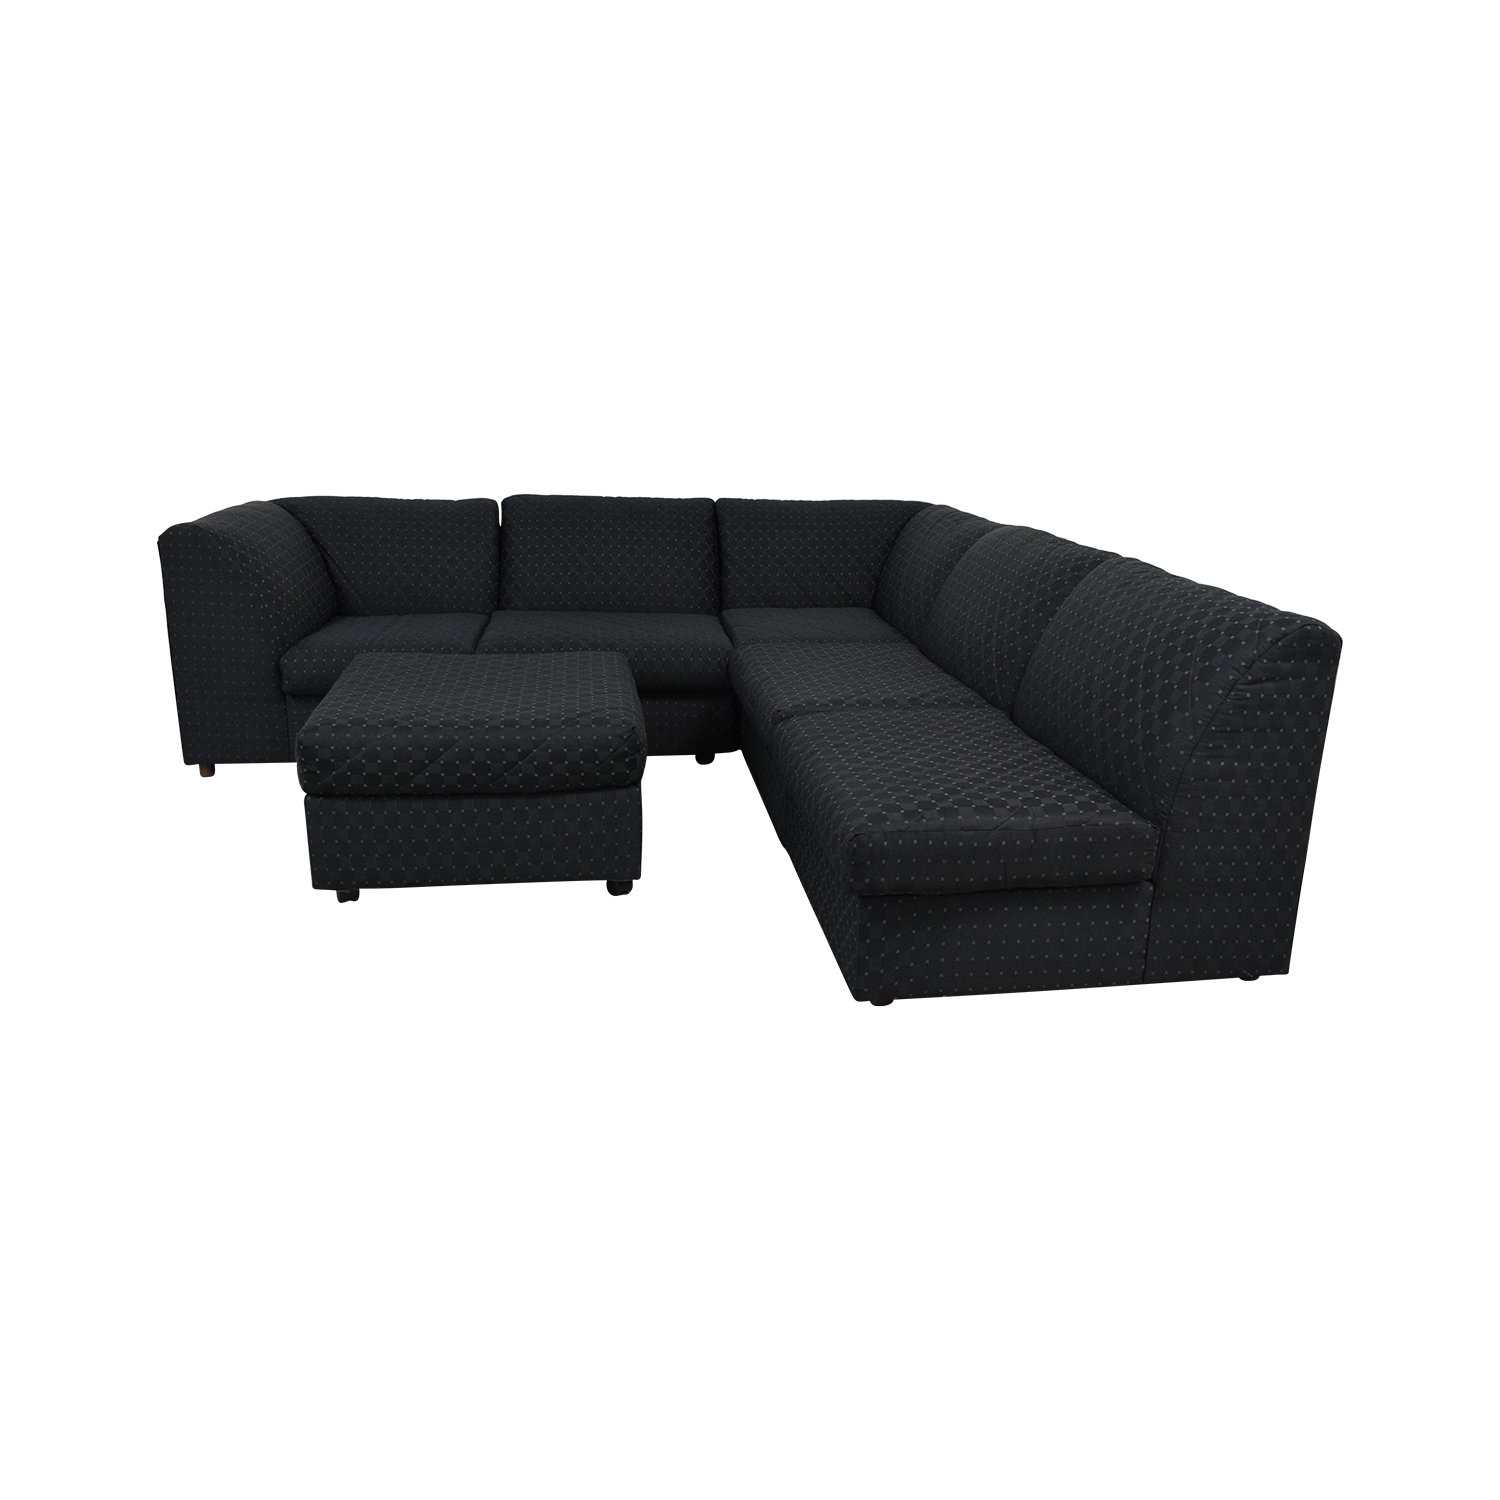 Broyhill Furniture Broyhill Furniture Corner Sectional with Ottoman black